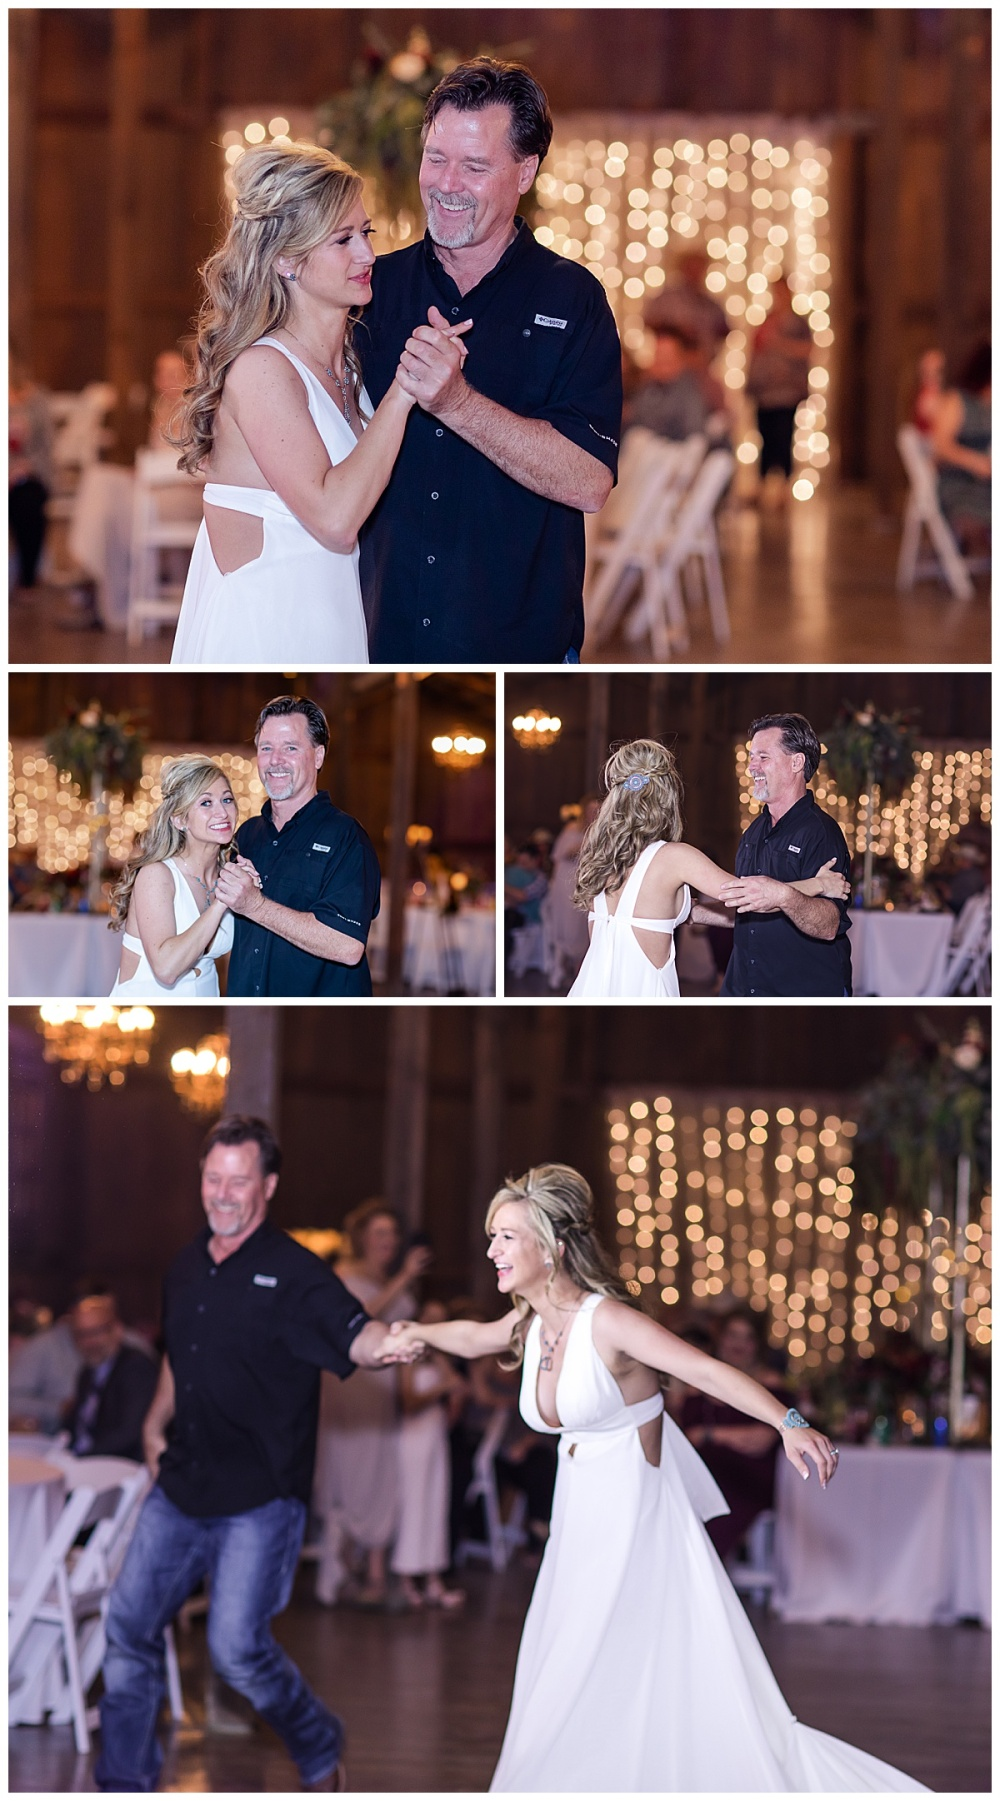 Eagle-Dancer-Ranch-Boerne-Texas-Wedding-Party-Barn-Carly-Barton-Photography_0062.jpg